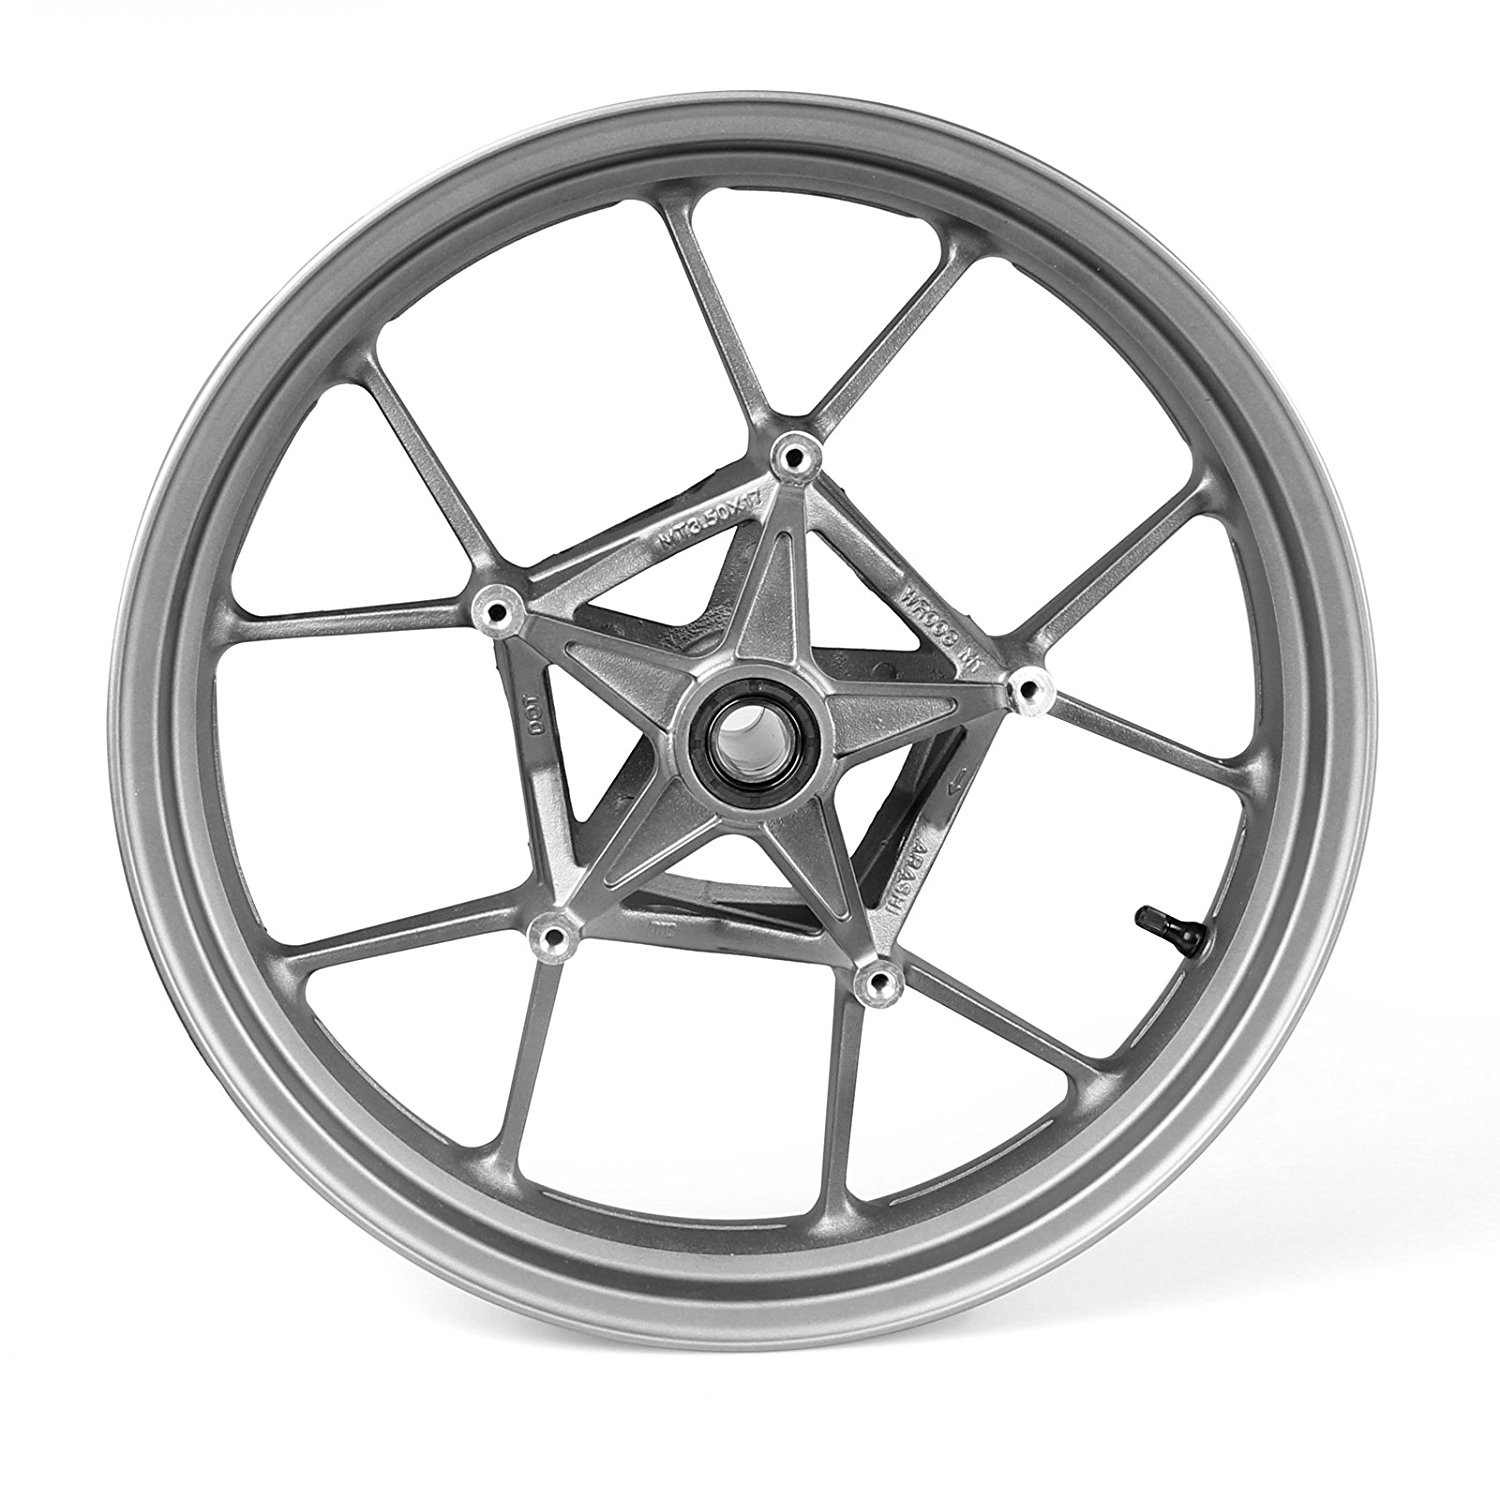 cheap bmw front wheel find bmw front wheel deals on line at alibaba BMW Truck X5 get quotations areyourshop front wheel rim for bmw s1000rr 2009 2015 2010 2011 2012 2013 2014